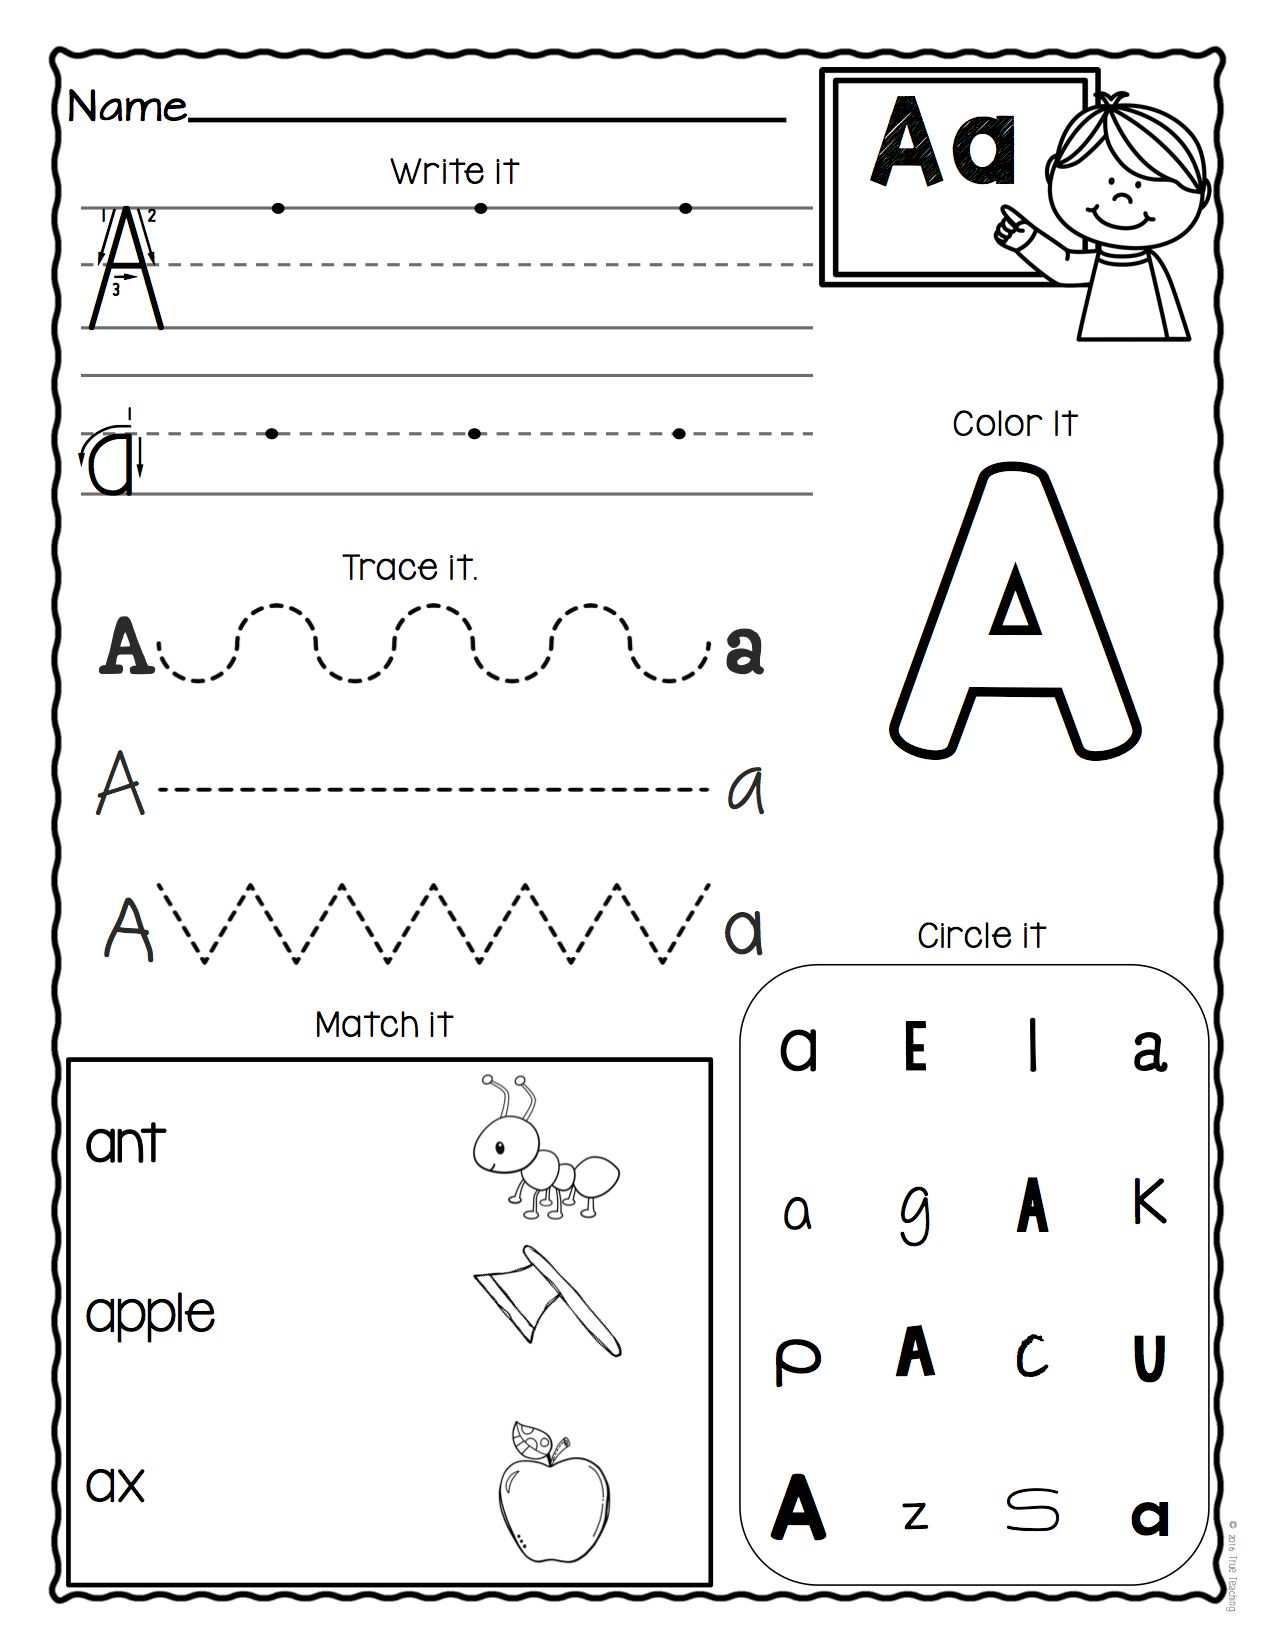 AZ Letter Worksheets (Set 3) Letter worksheets for